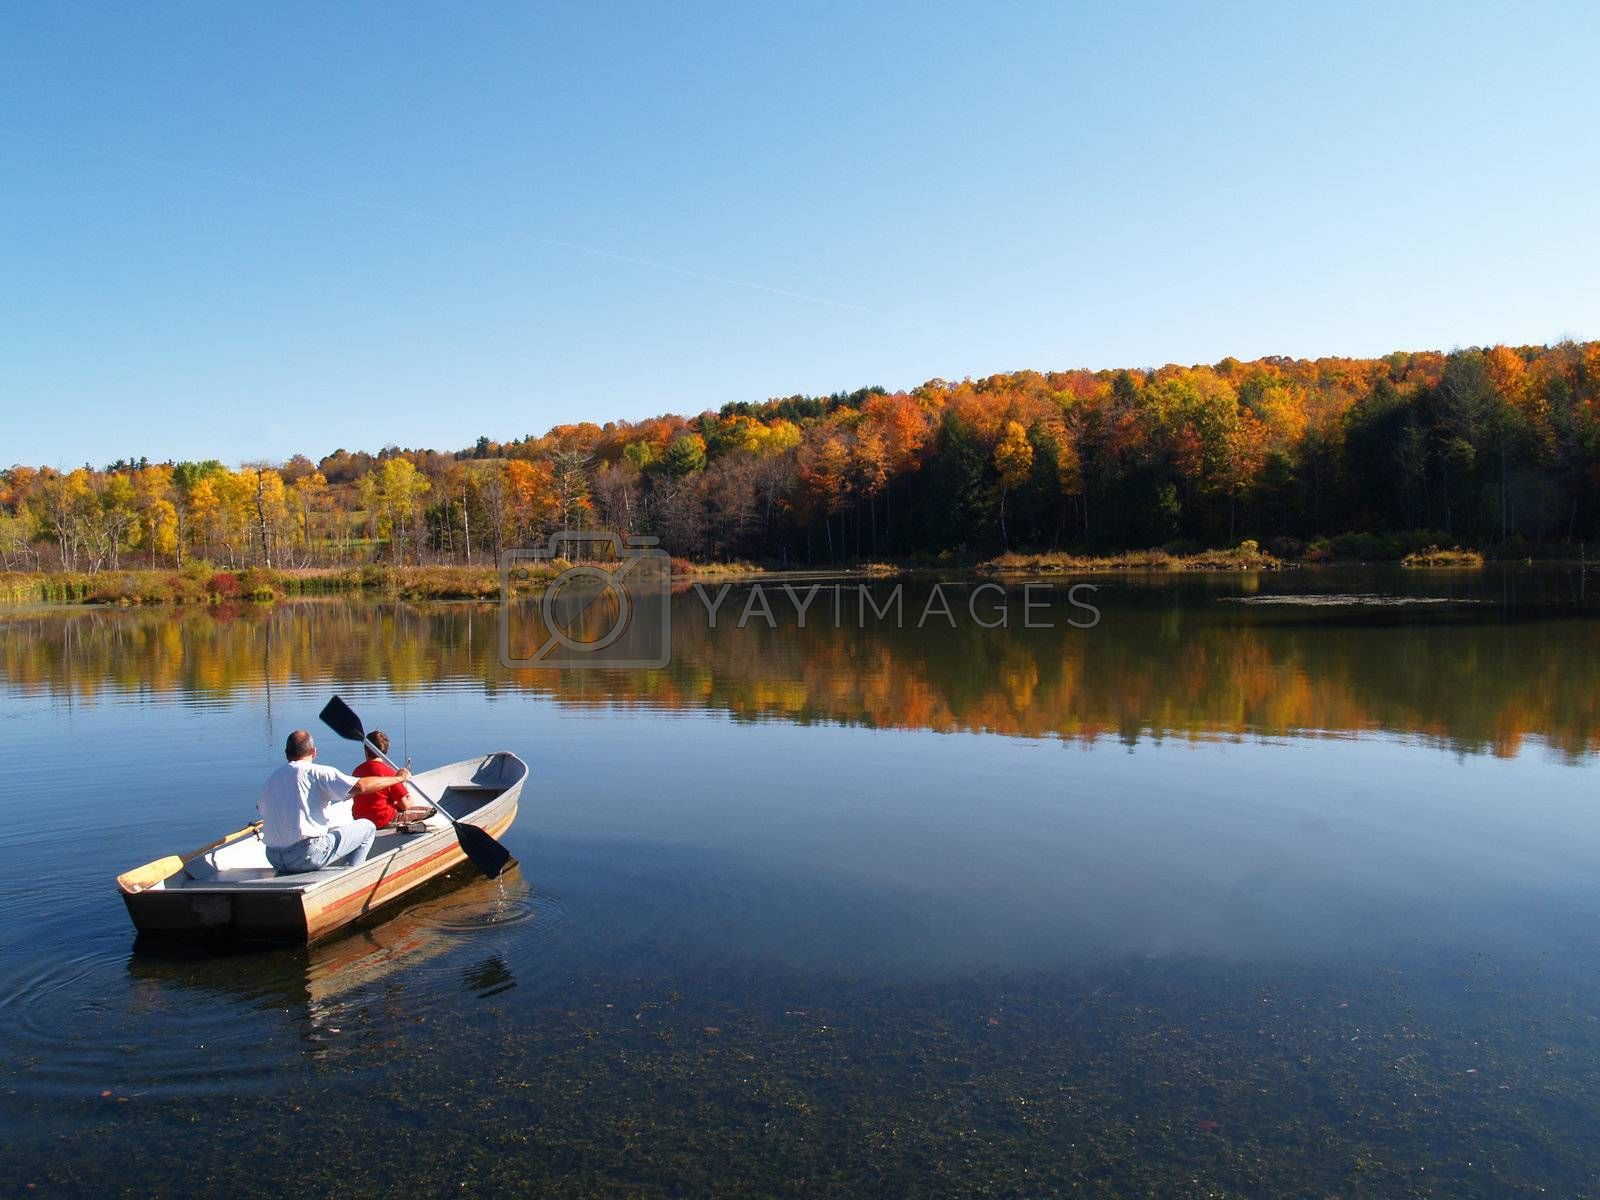 father and son fishing in autumn on  a calm lake